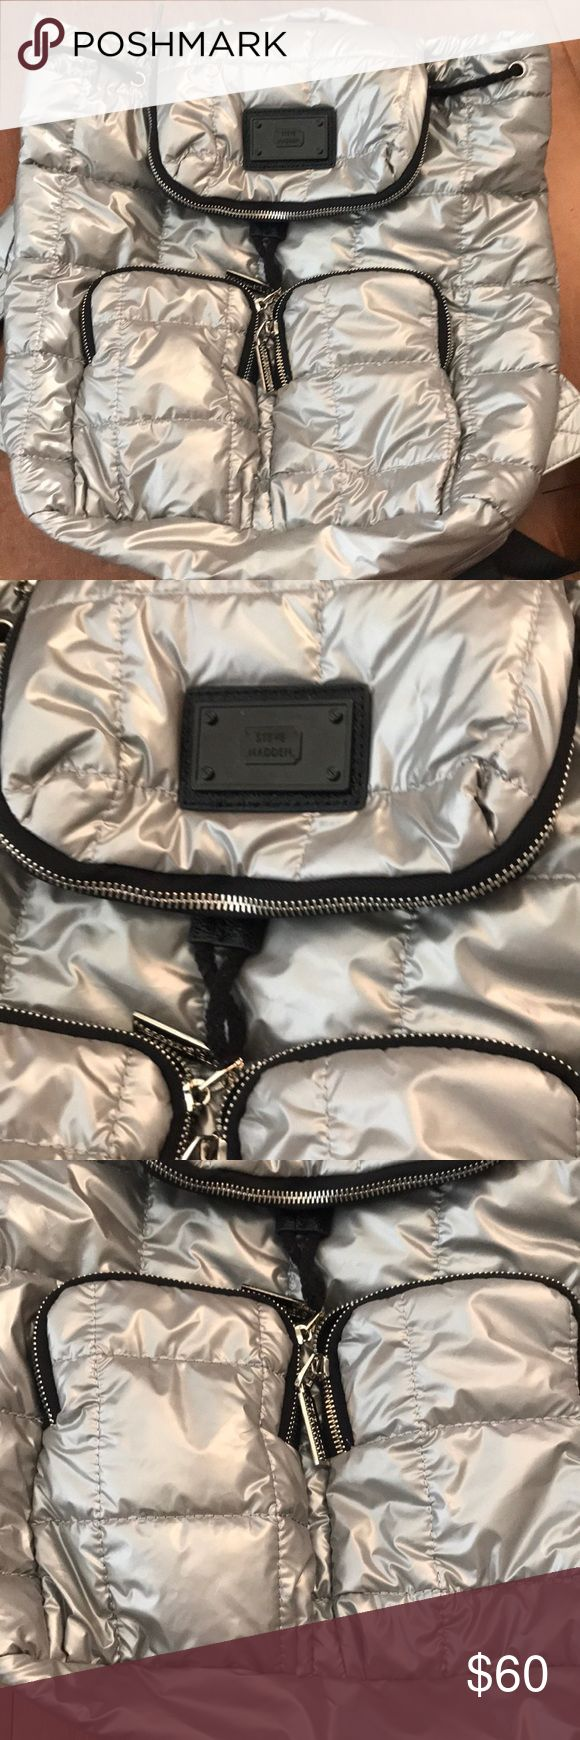 Steve Madden metallic silver backpack quilted New no tags Steve Madden Bags Backpacks